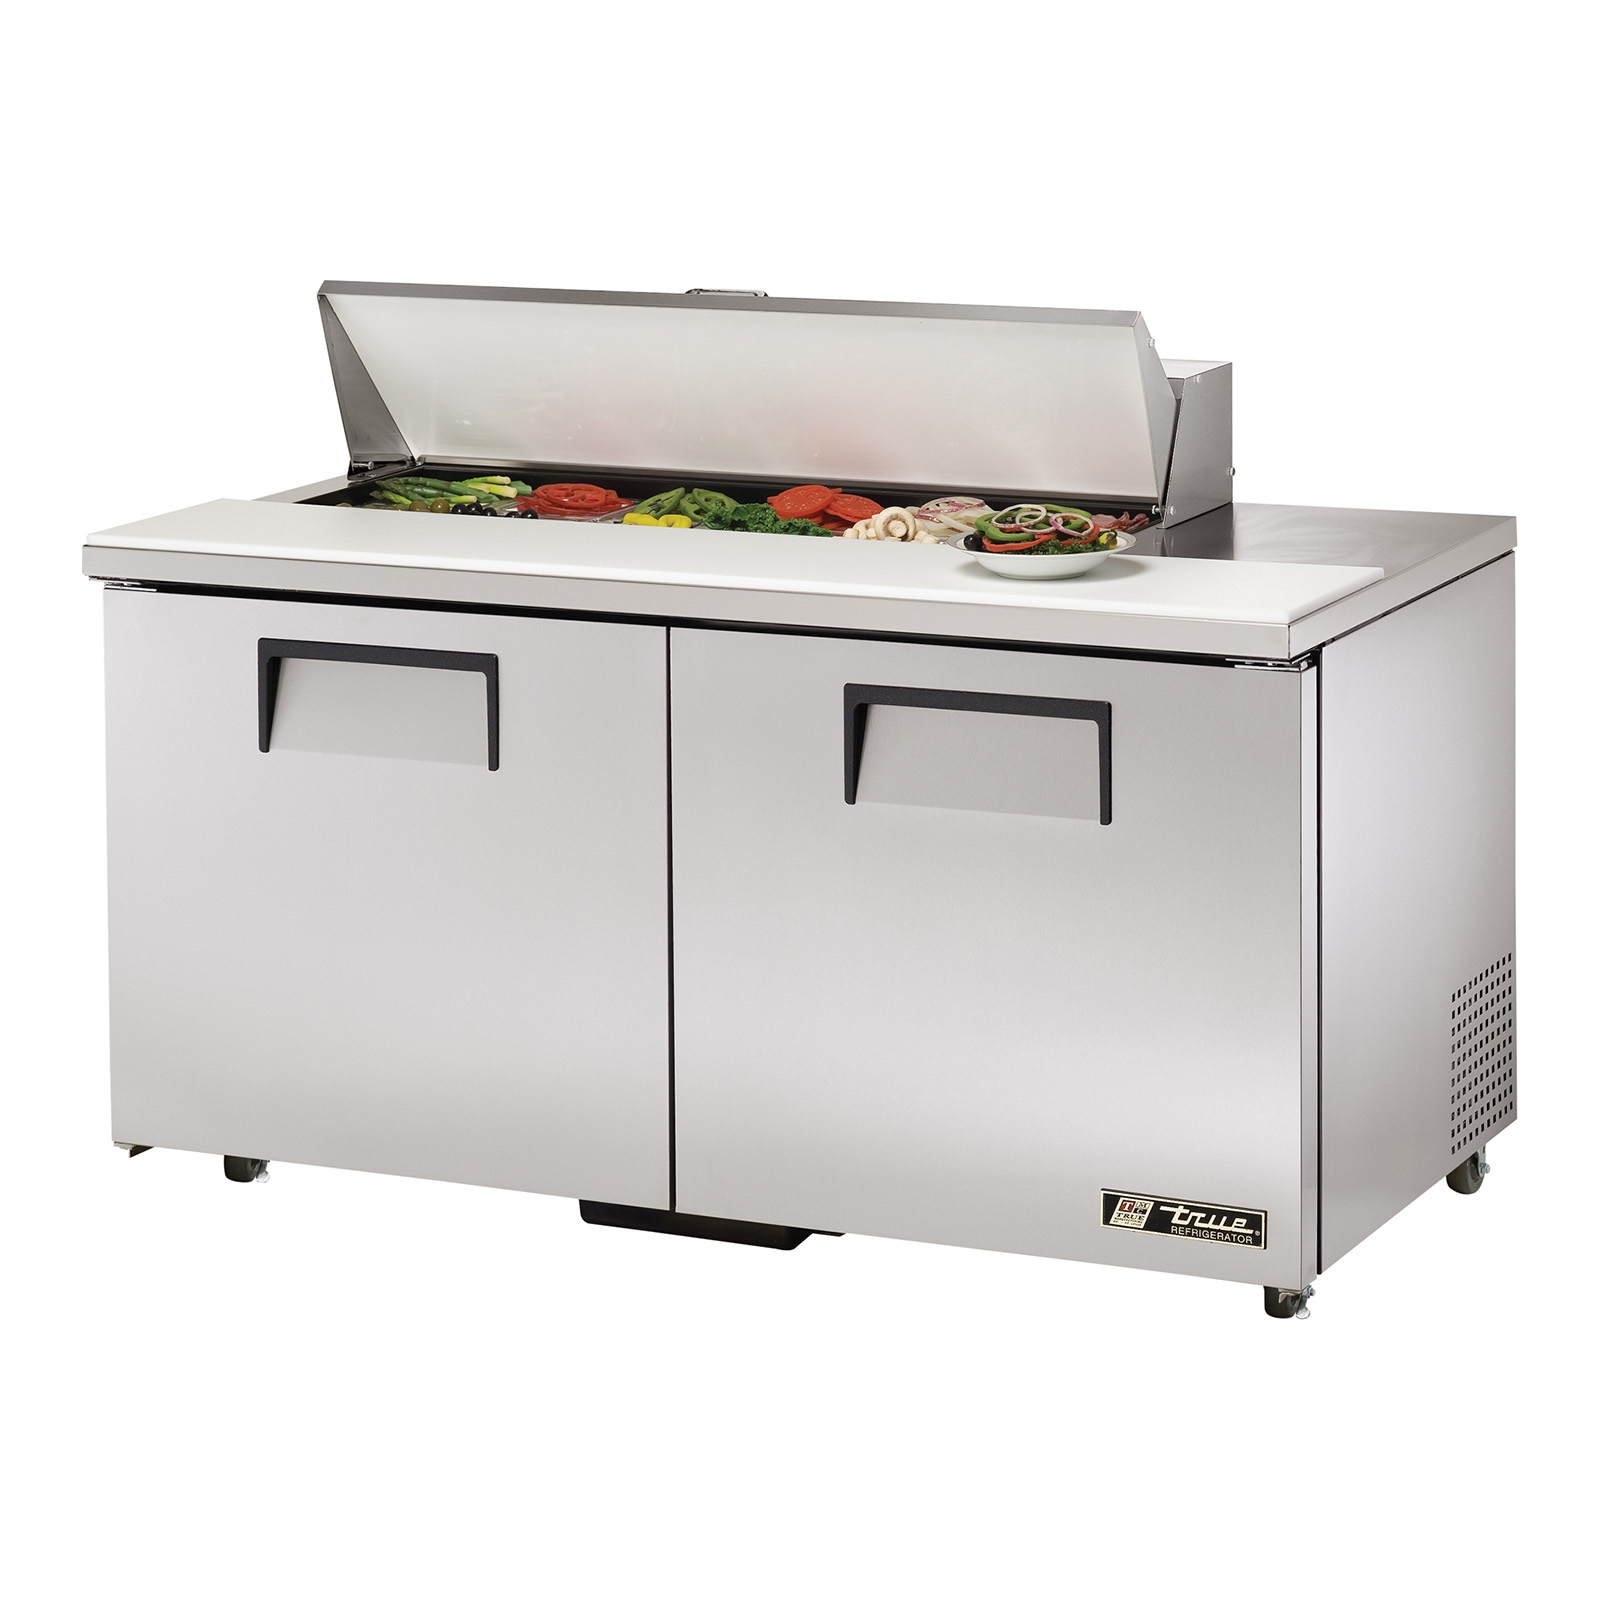 TSSU-60-12-ADA True - ADA Compliant Sandwich/Salad Unit (12) 1/6 size (4